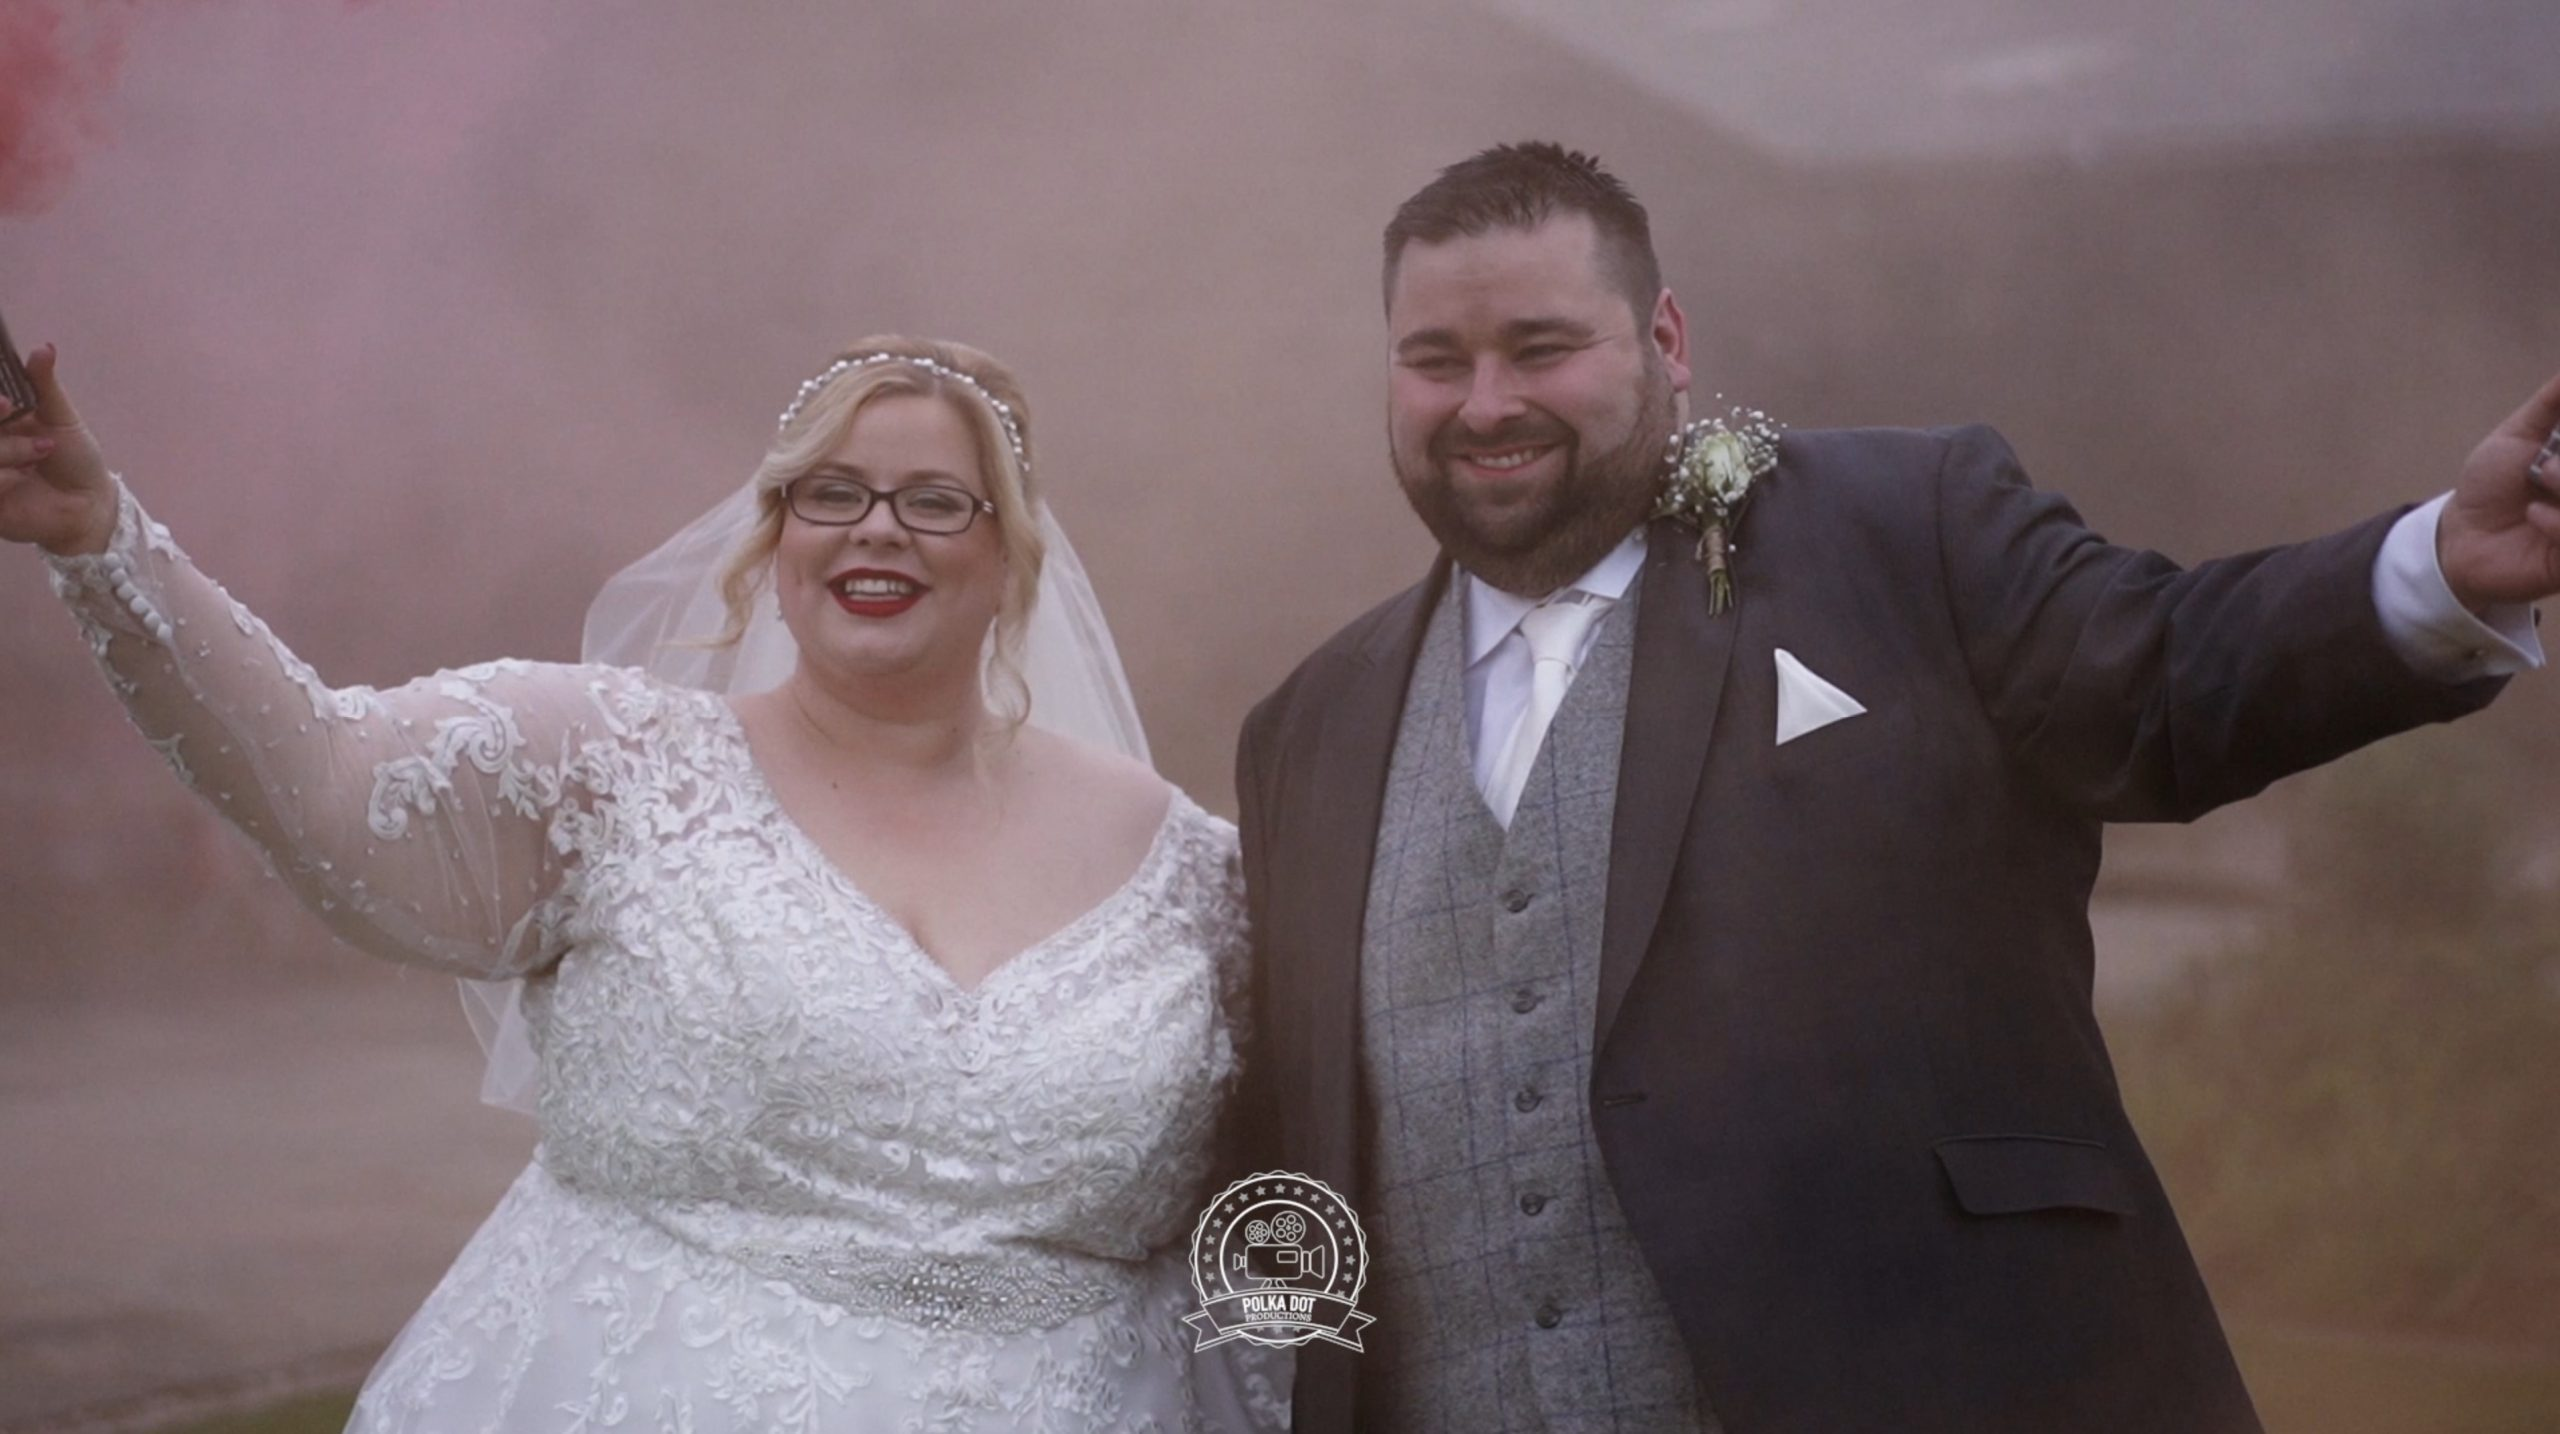 A gorgeous wedding video from Curradine Barns!